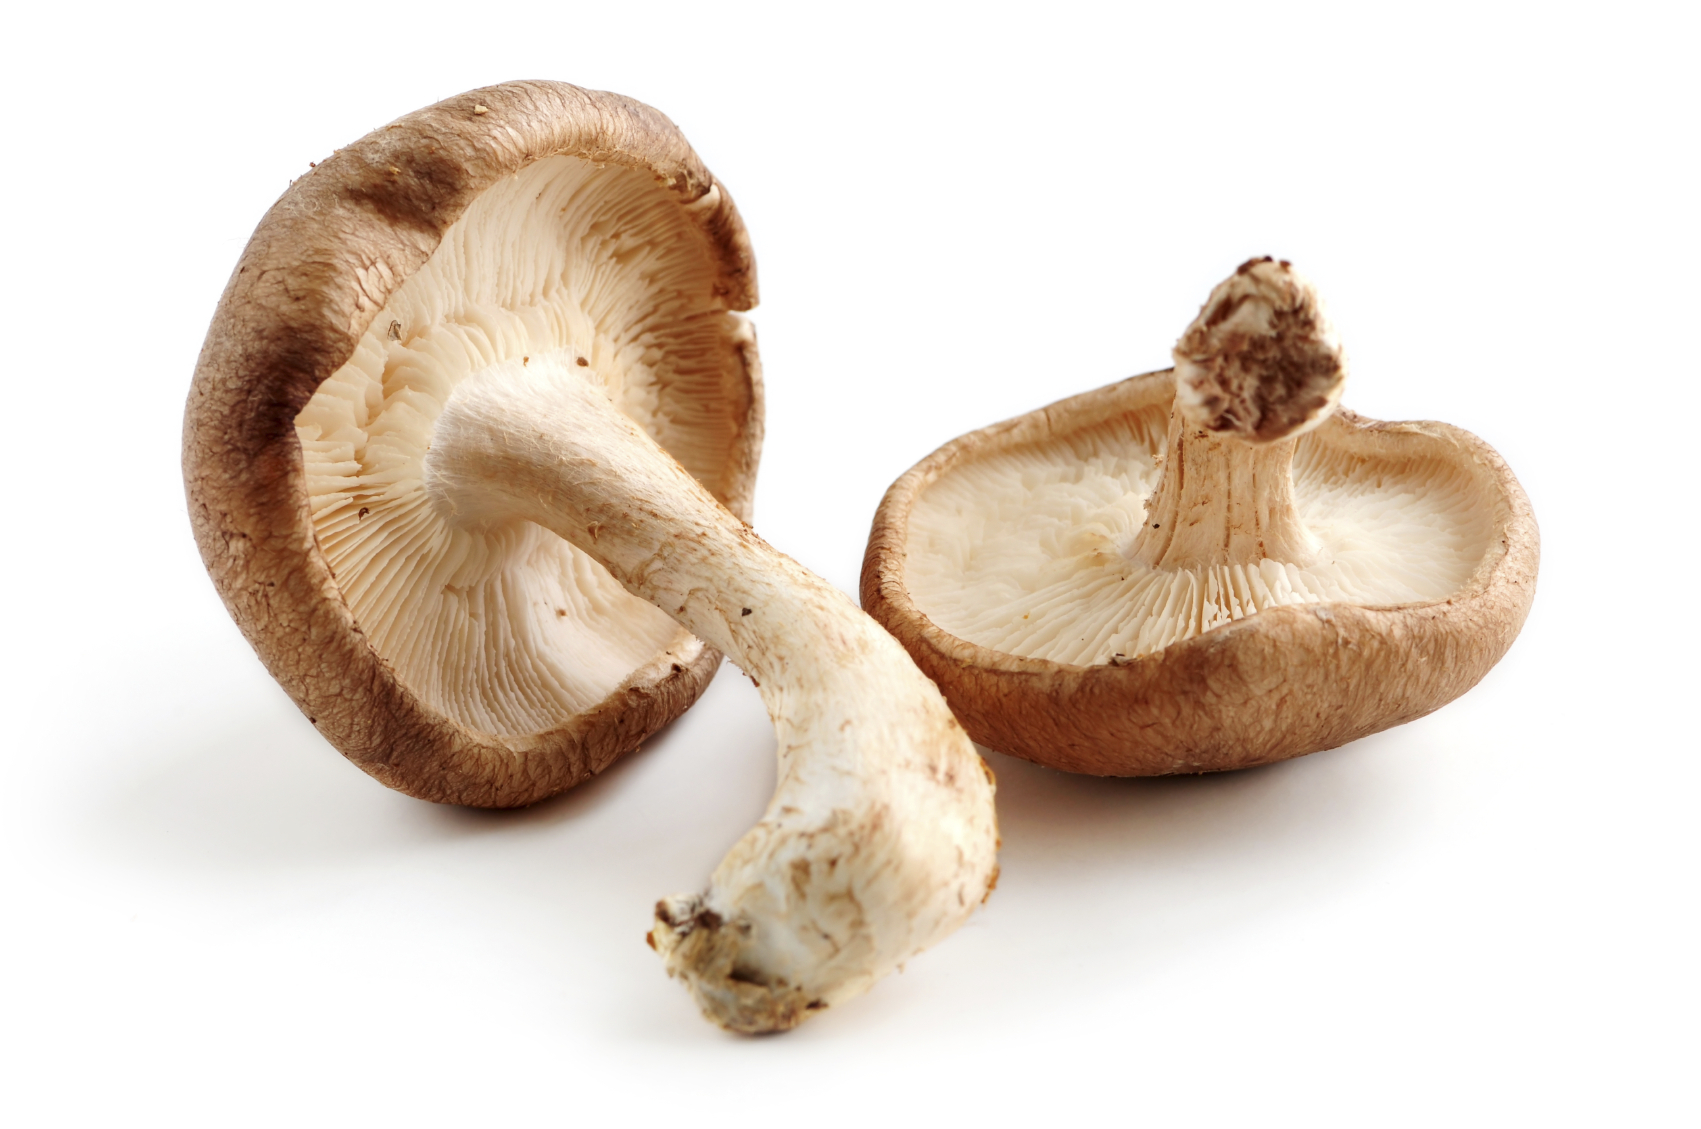 Shiitake-mushrooms-contain-a-powerful-compound-that-may-help-erase-a-cancer-causing-virus.1-ad2997.jpg